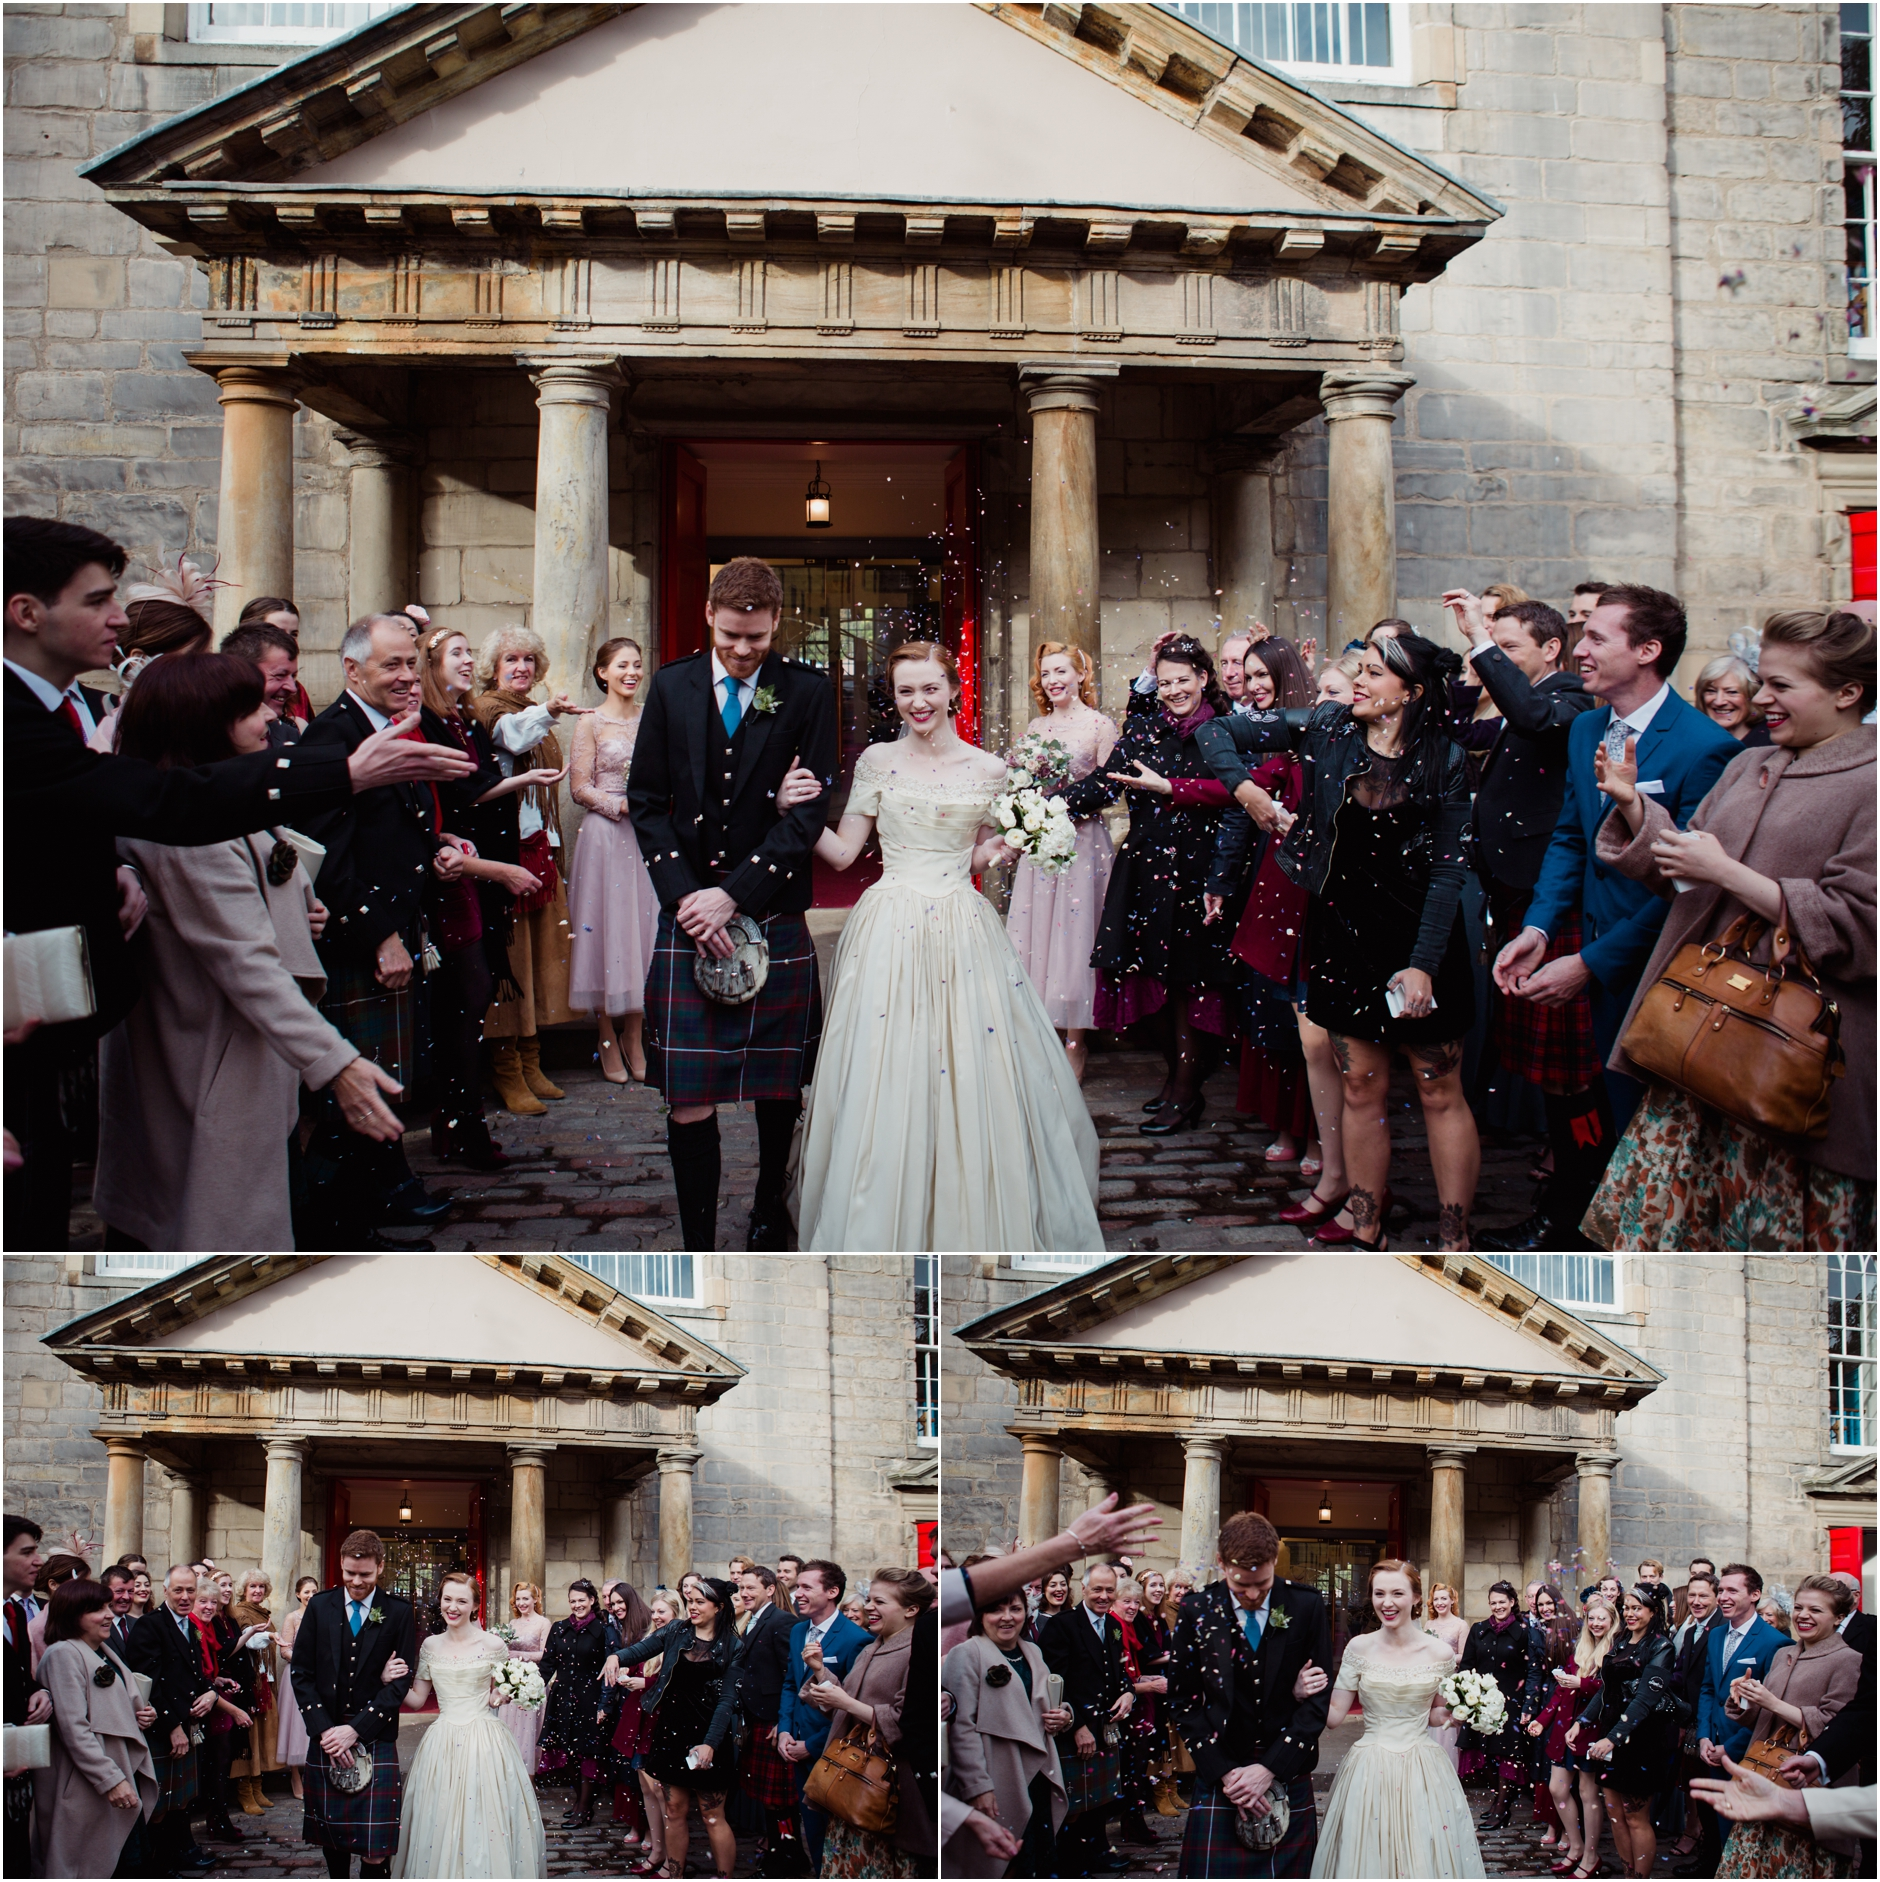 vintage bride wedding edinburgh cannongate kirk royal college of physicians